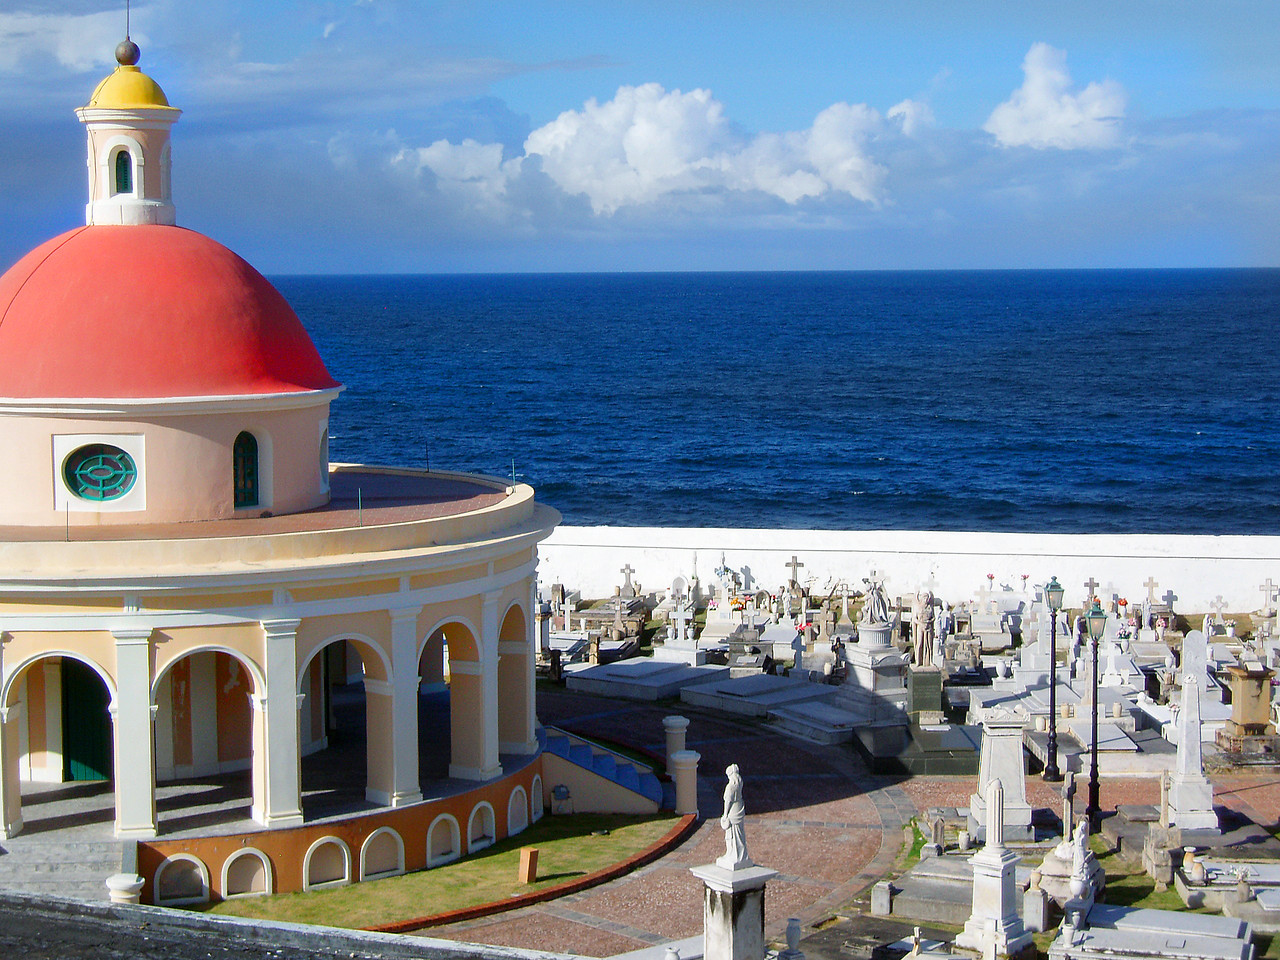 Cementerio de San Juan, located between El Morrow and the rocky cliffs above the Atlantic.